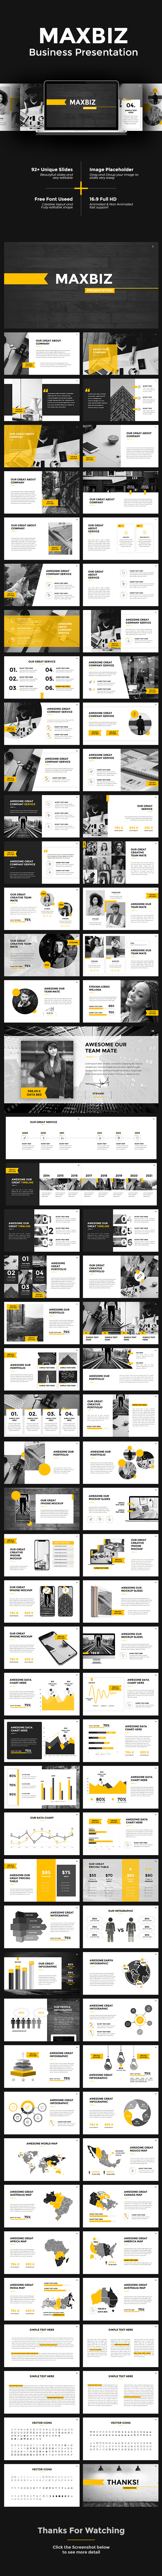 Maxbiz - Business Keynote - Business Keynote Templates